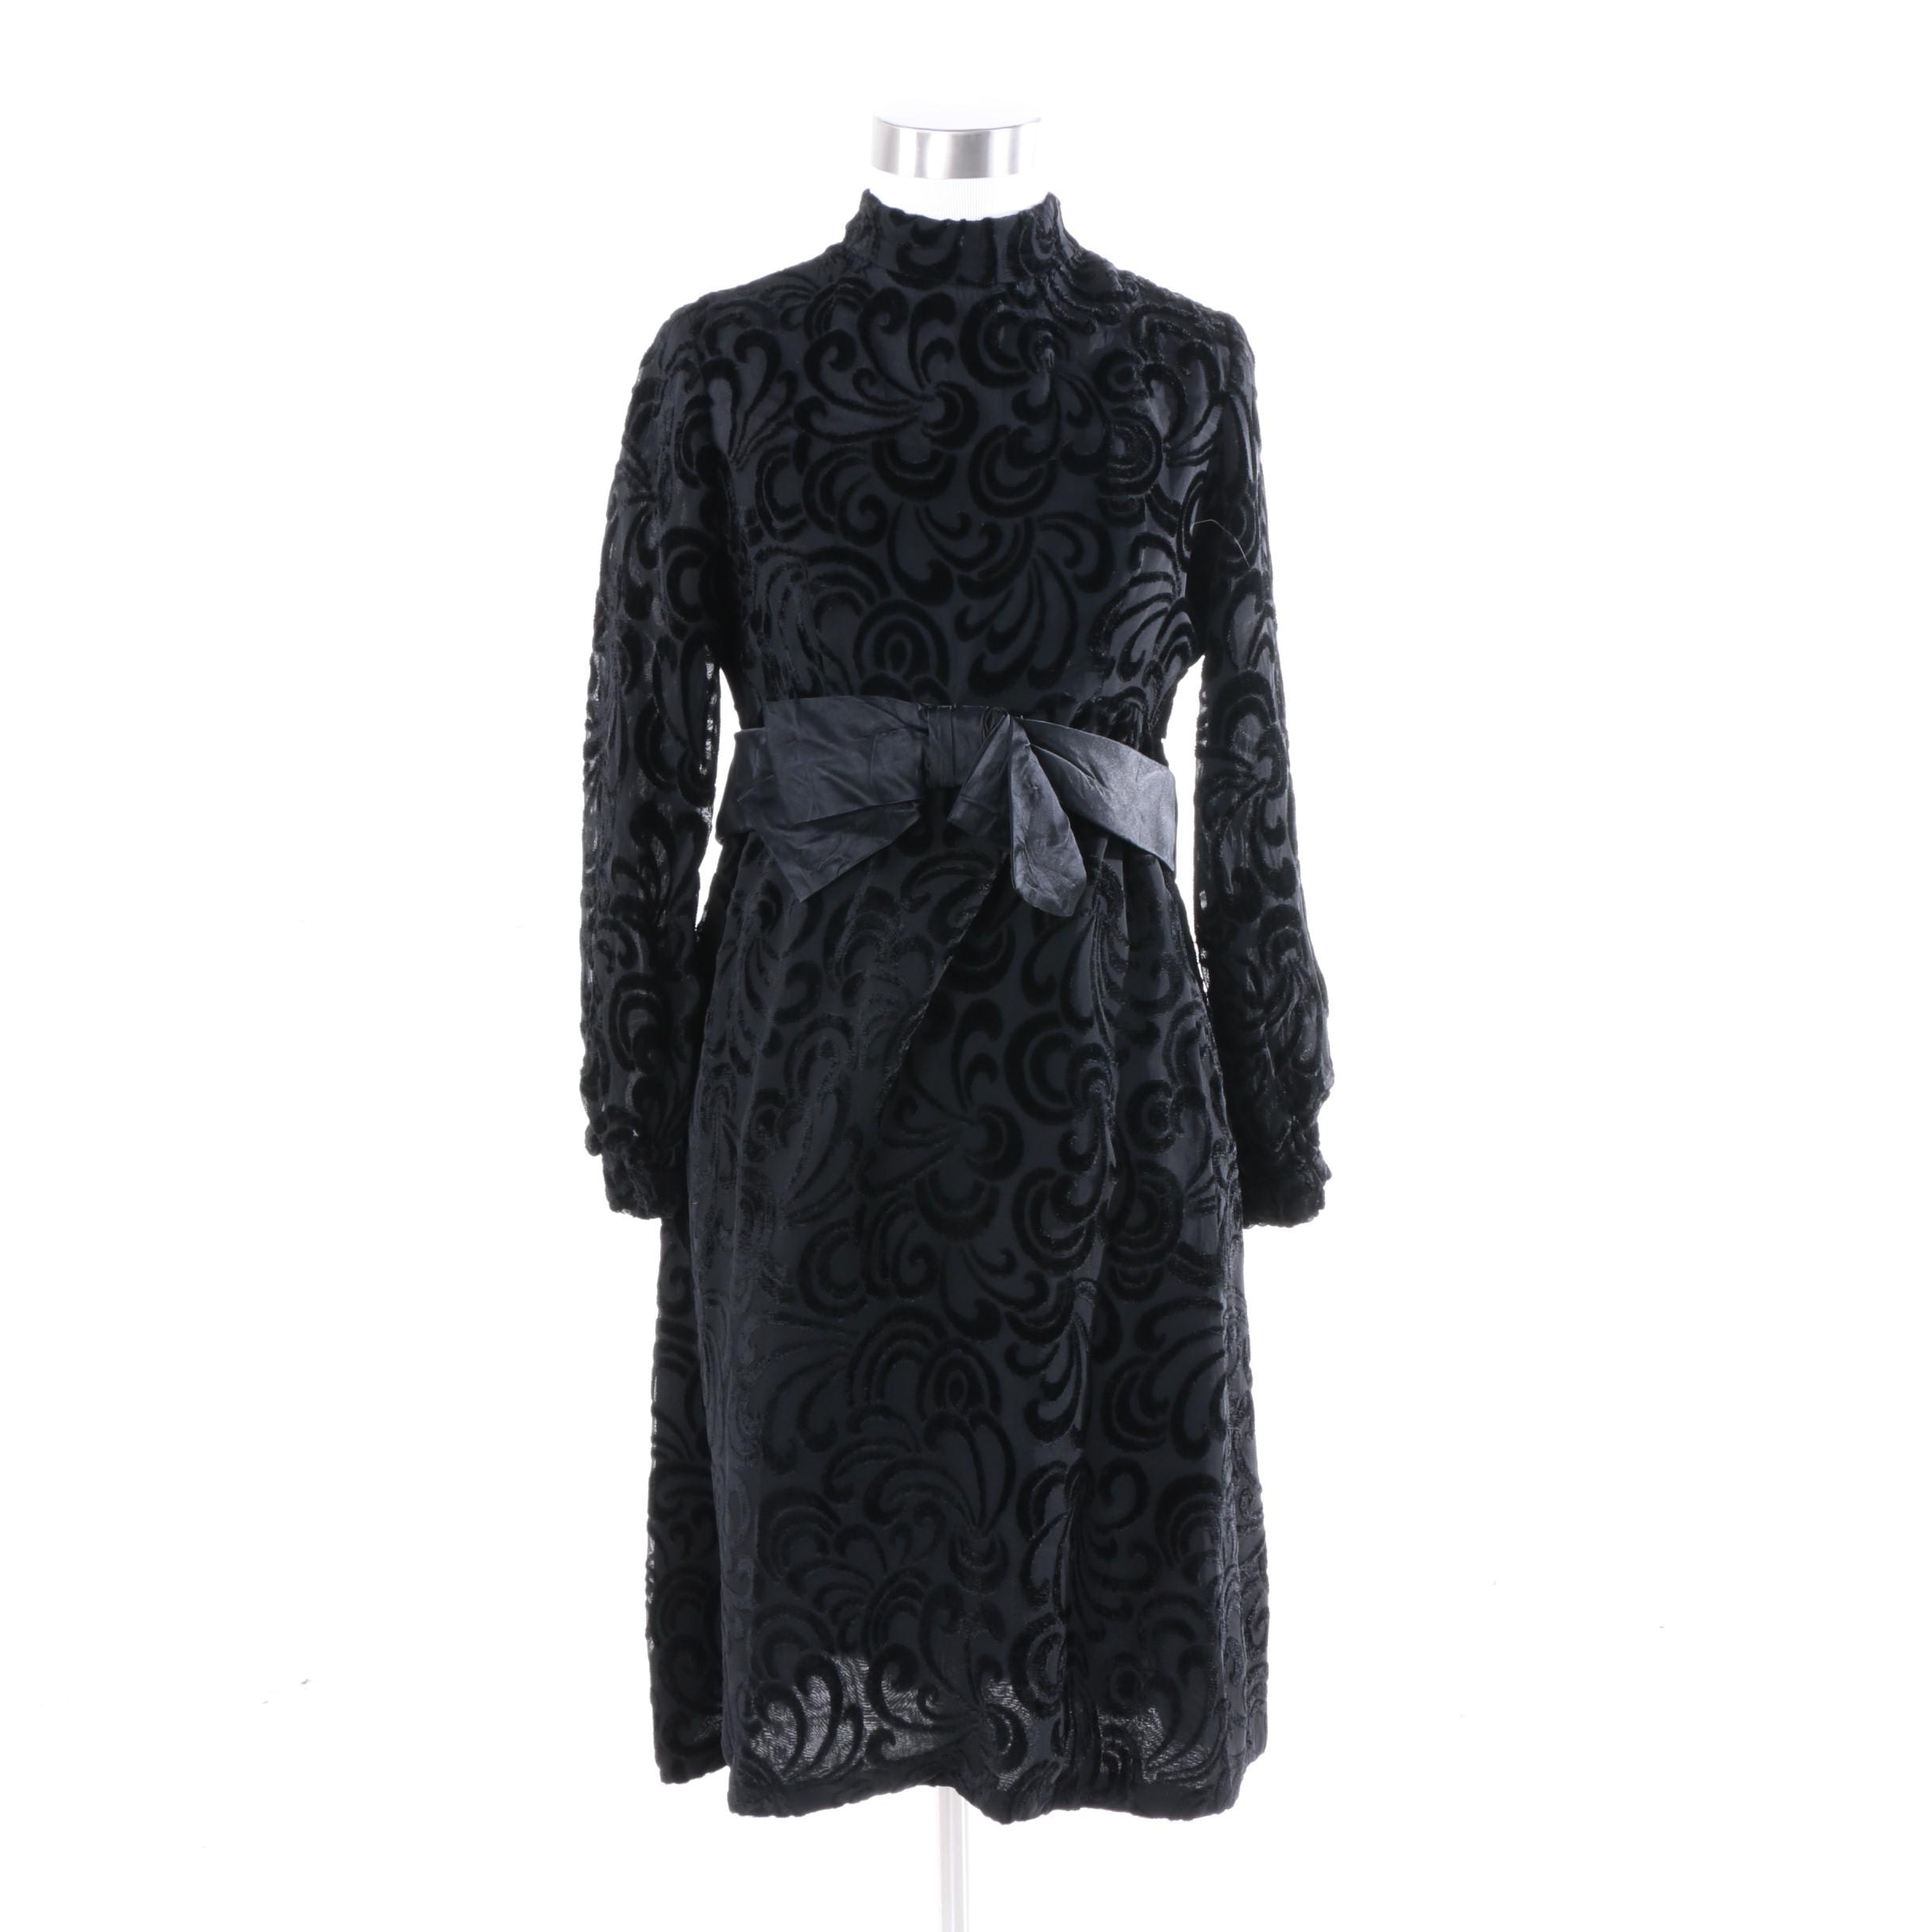 1970s R.S.V.P. Neiman Marcus Black Devoré Velvet Cocktail Dress